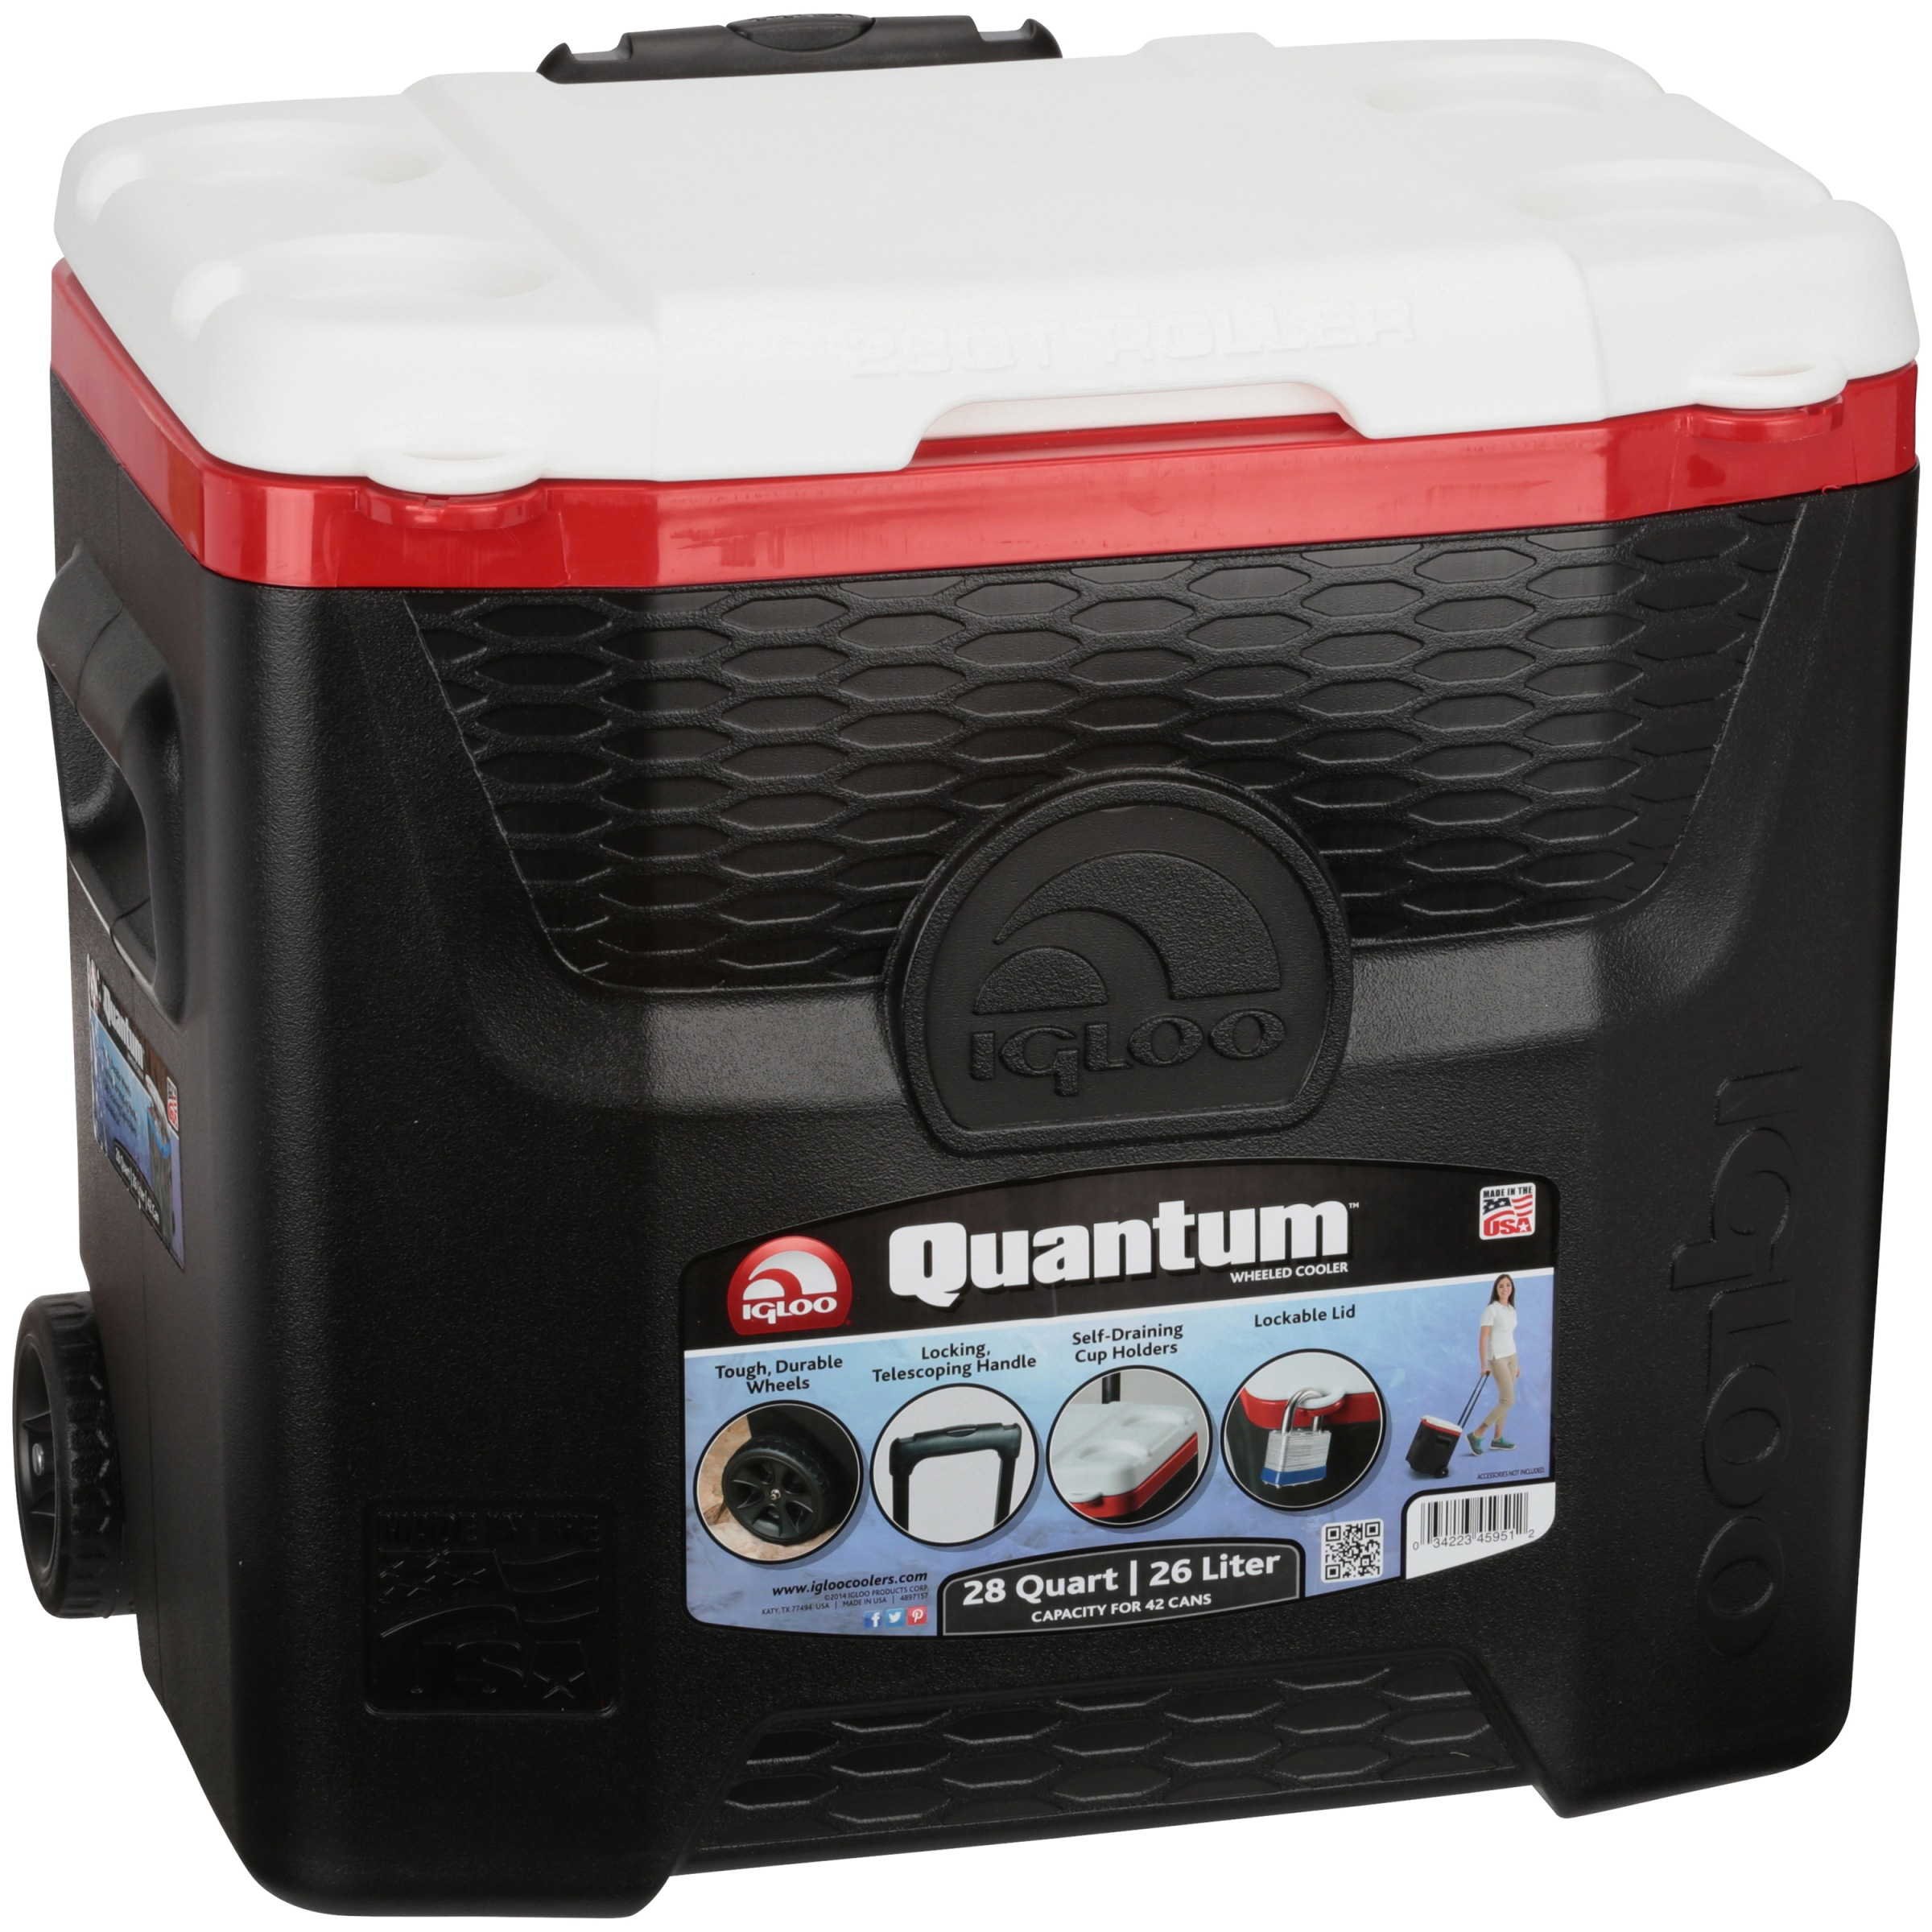 Igloo 28-Quart Quantum Wheeled Cooler